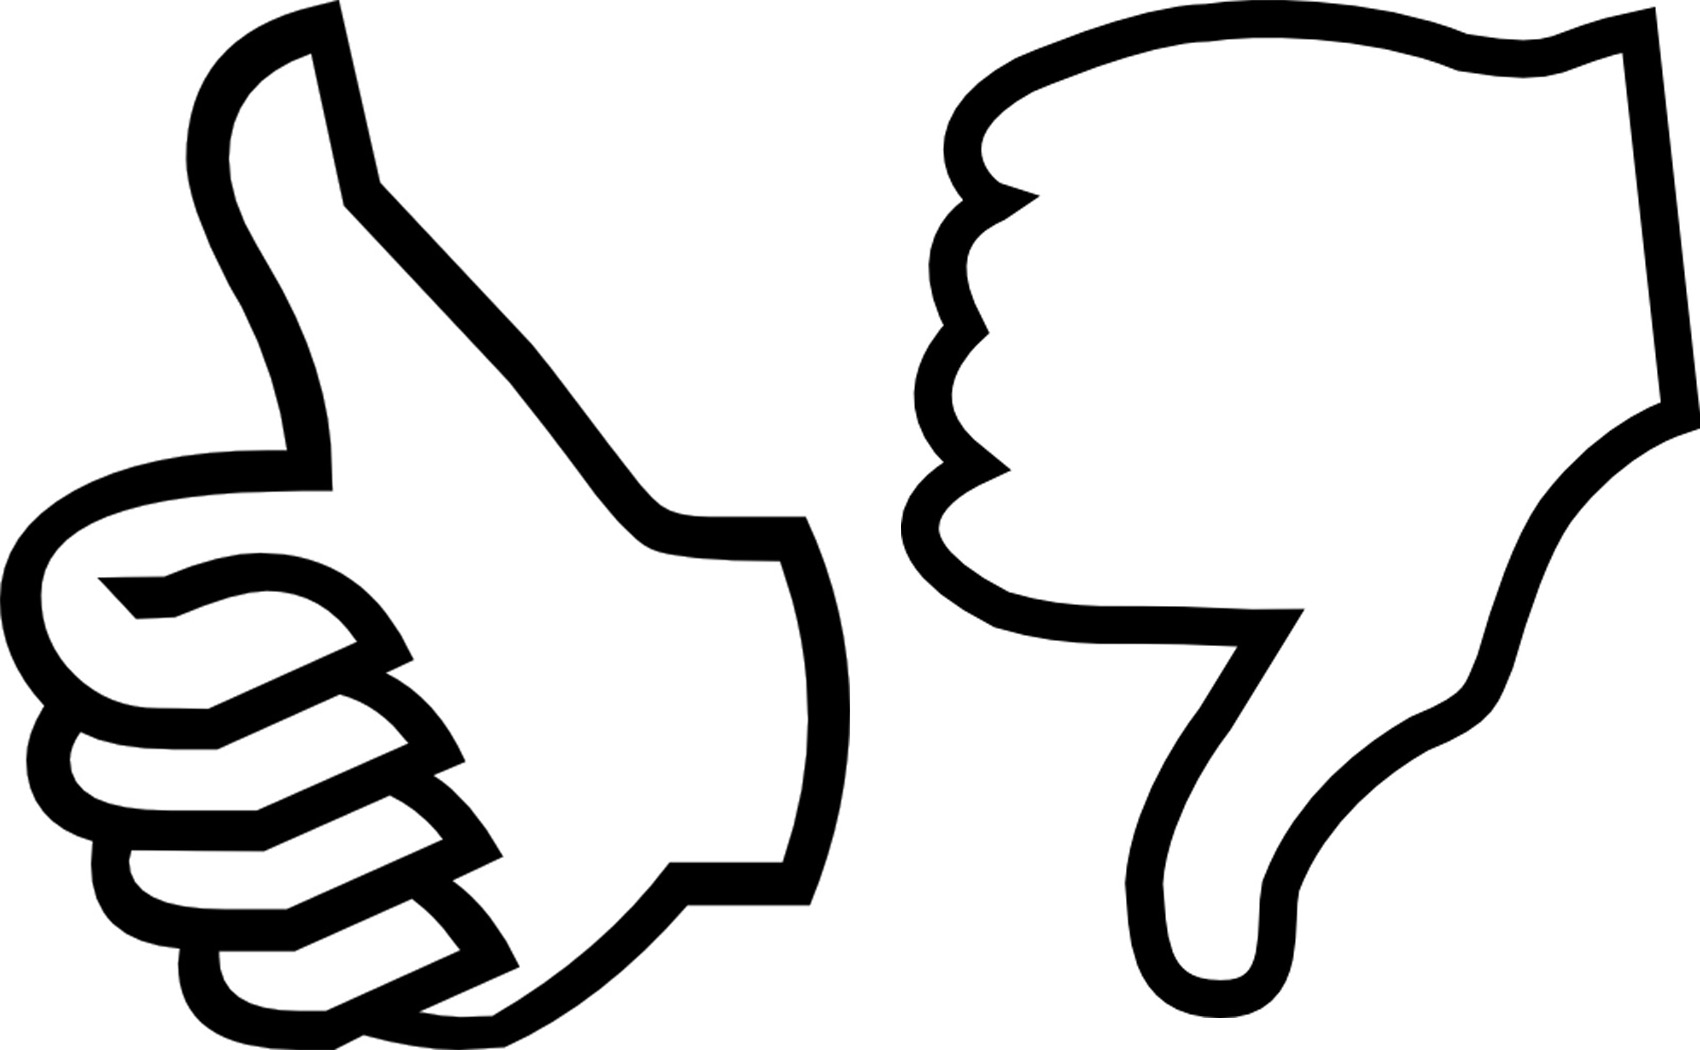 1700x1050 Thumbs Up And Down Clipart Clip Art